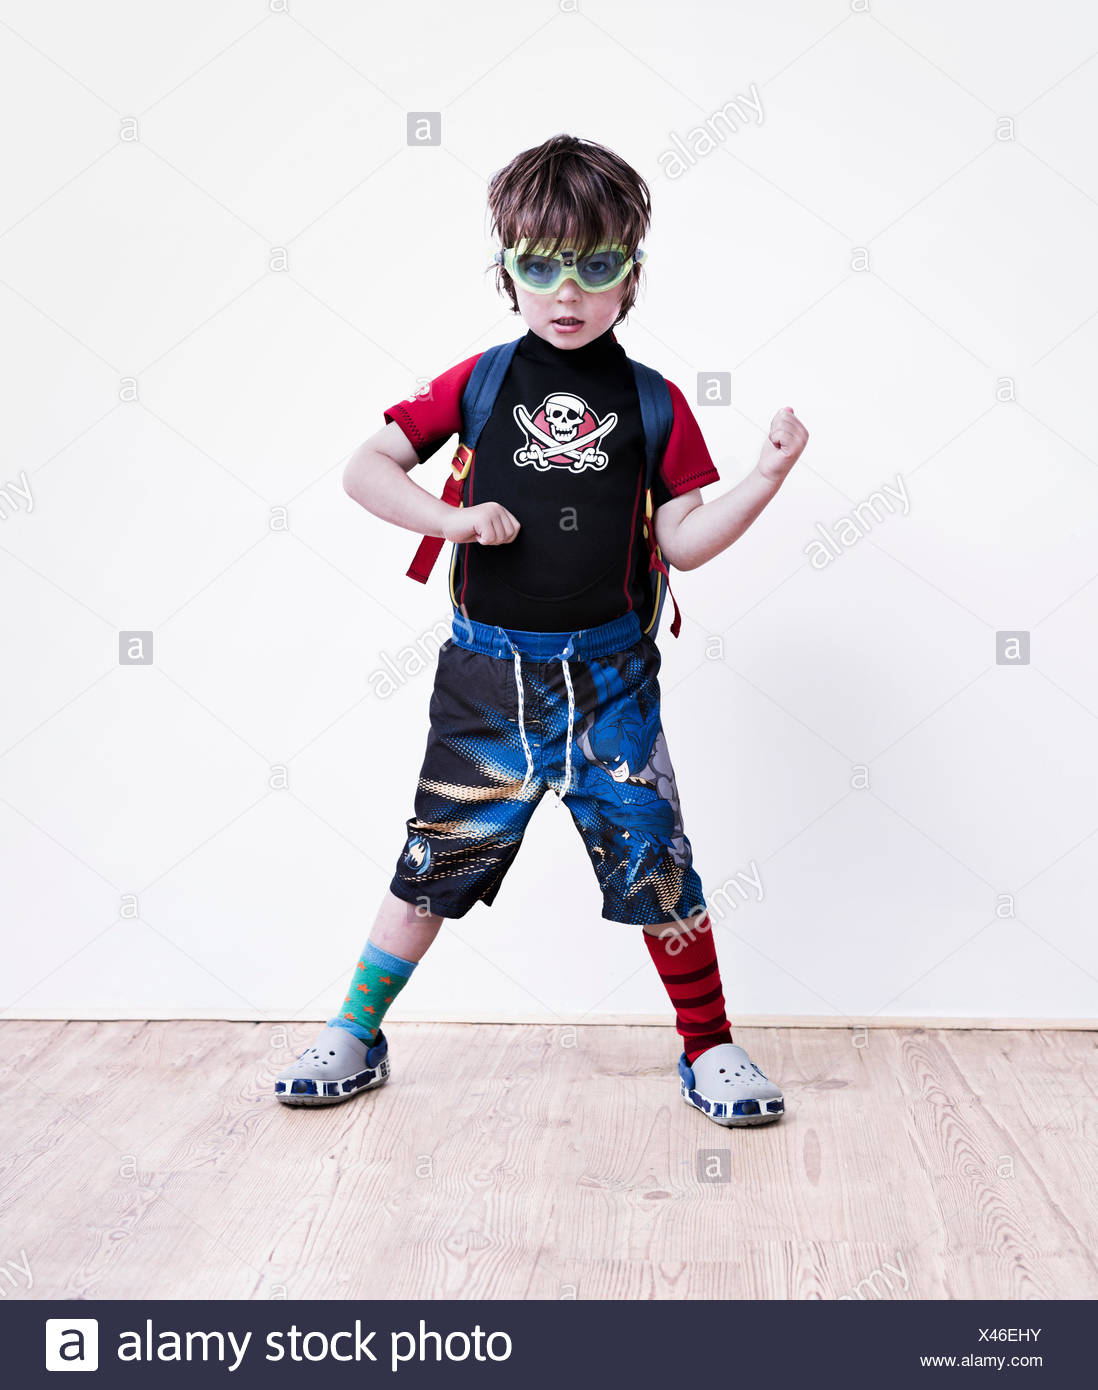 A boy standing with his legs apart posing in fancy dress, wearing a pirate tee-shirt, eye goggles and long shorts. Stock Photo